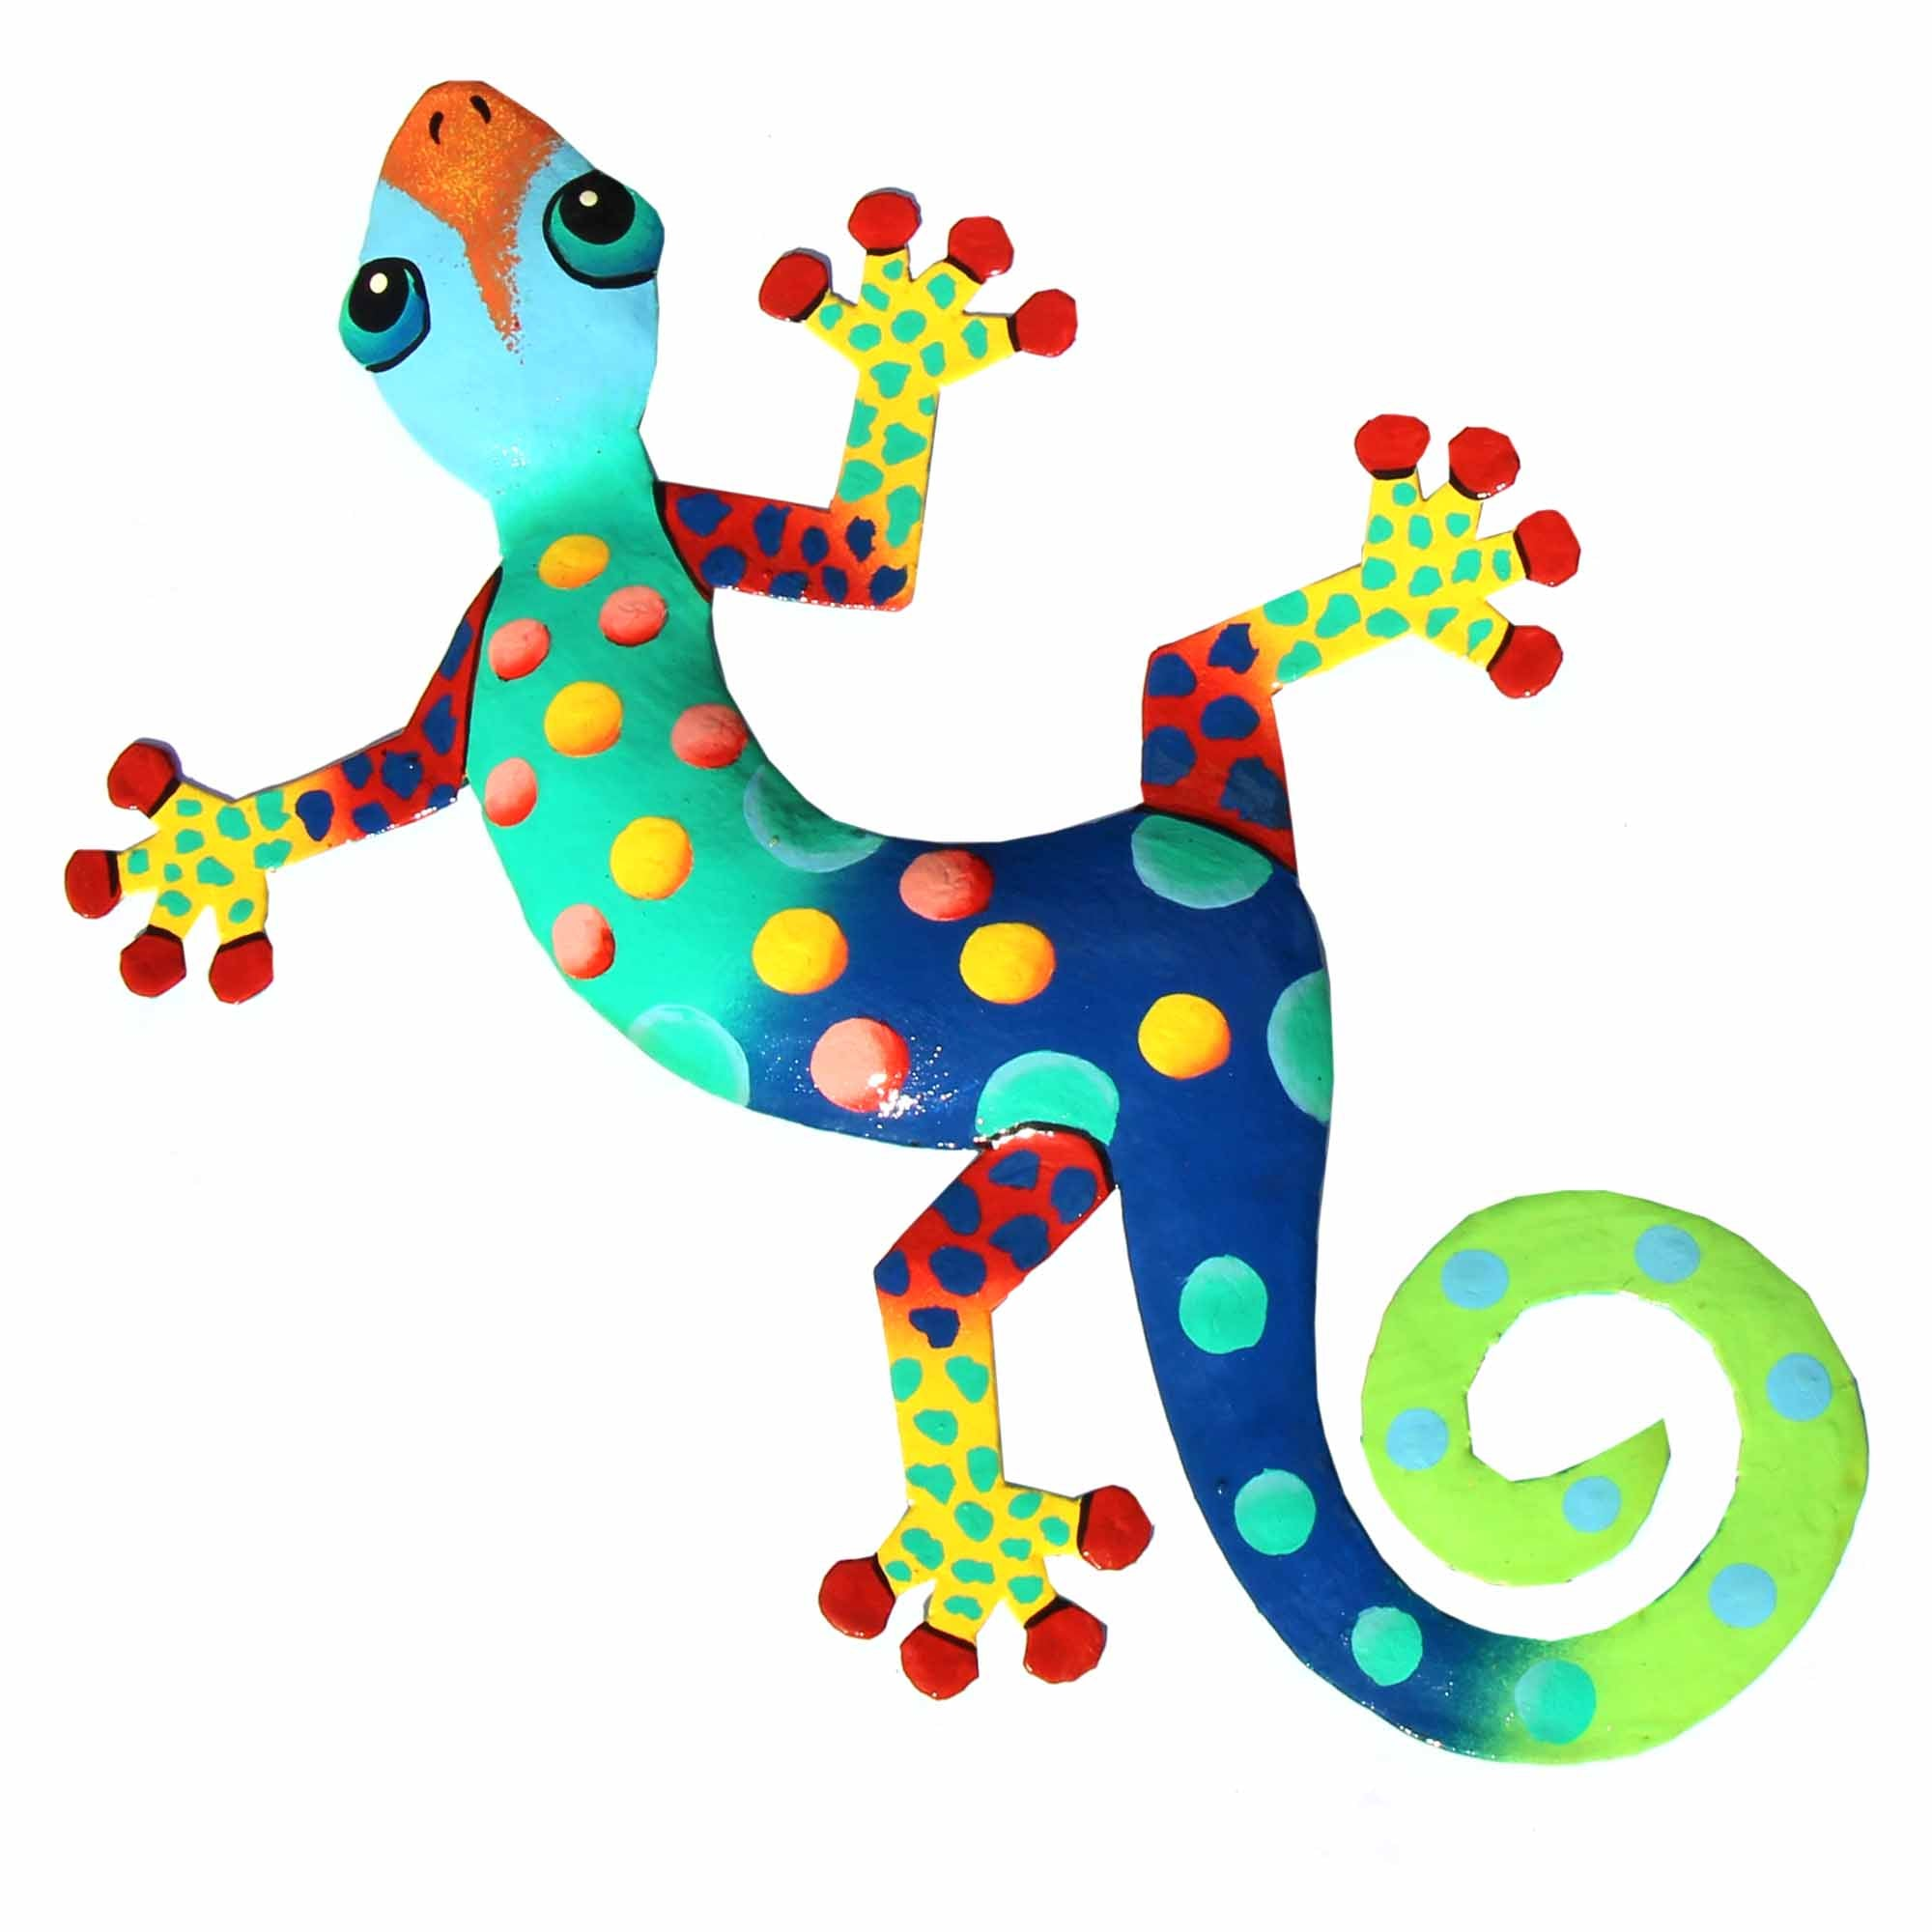 13 inch Painted Metal Drum Art Gecko - Florida Design